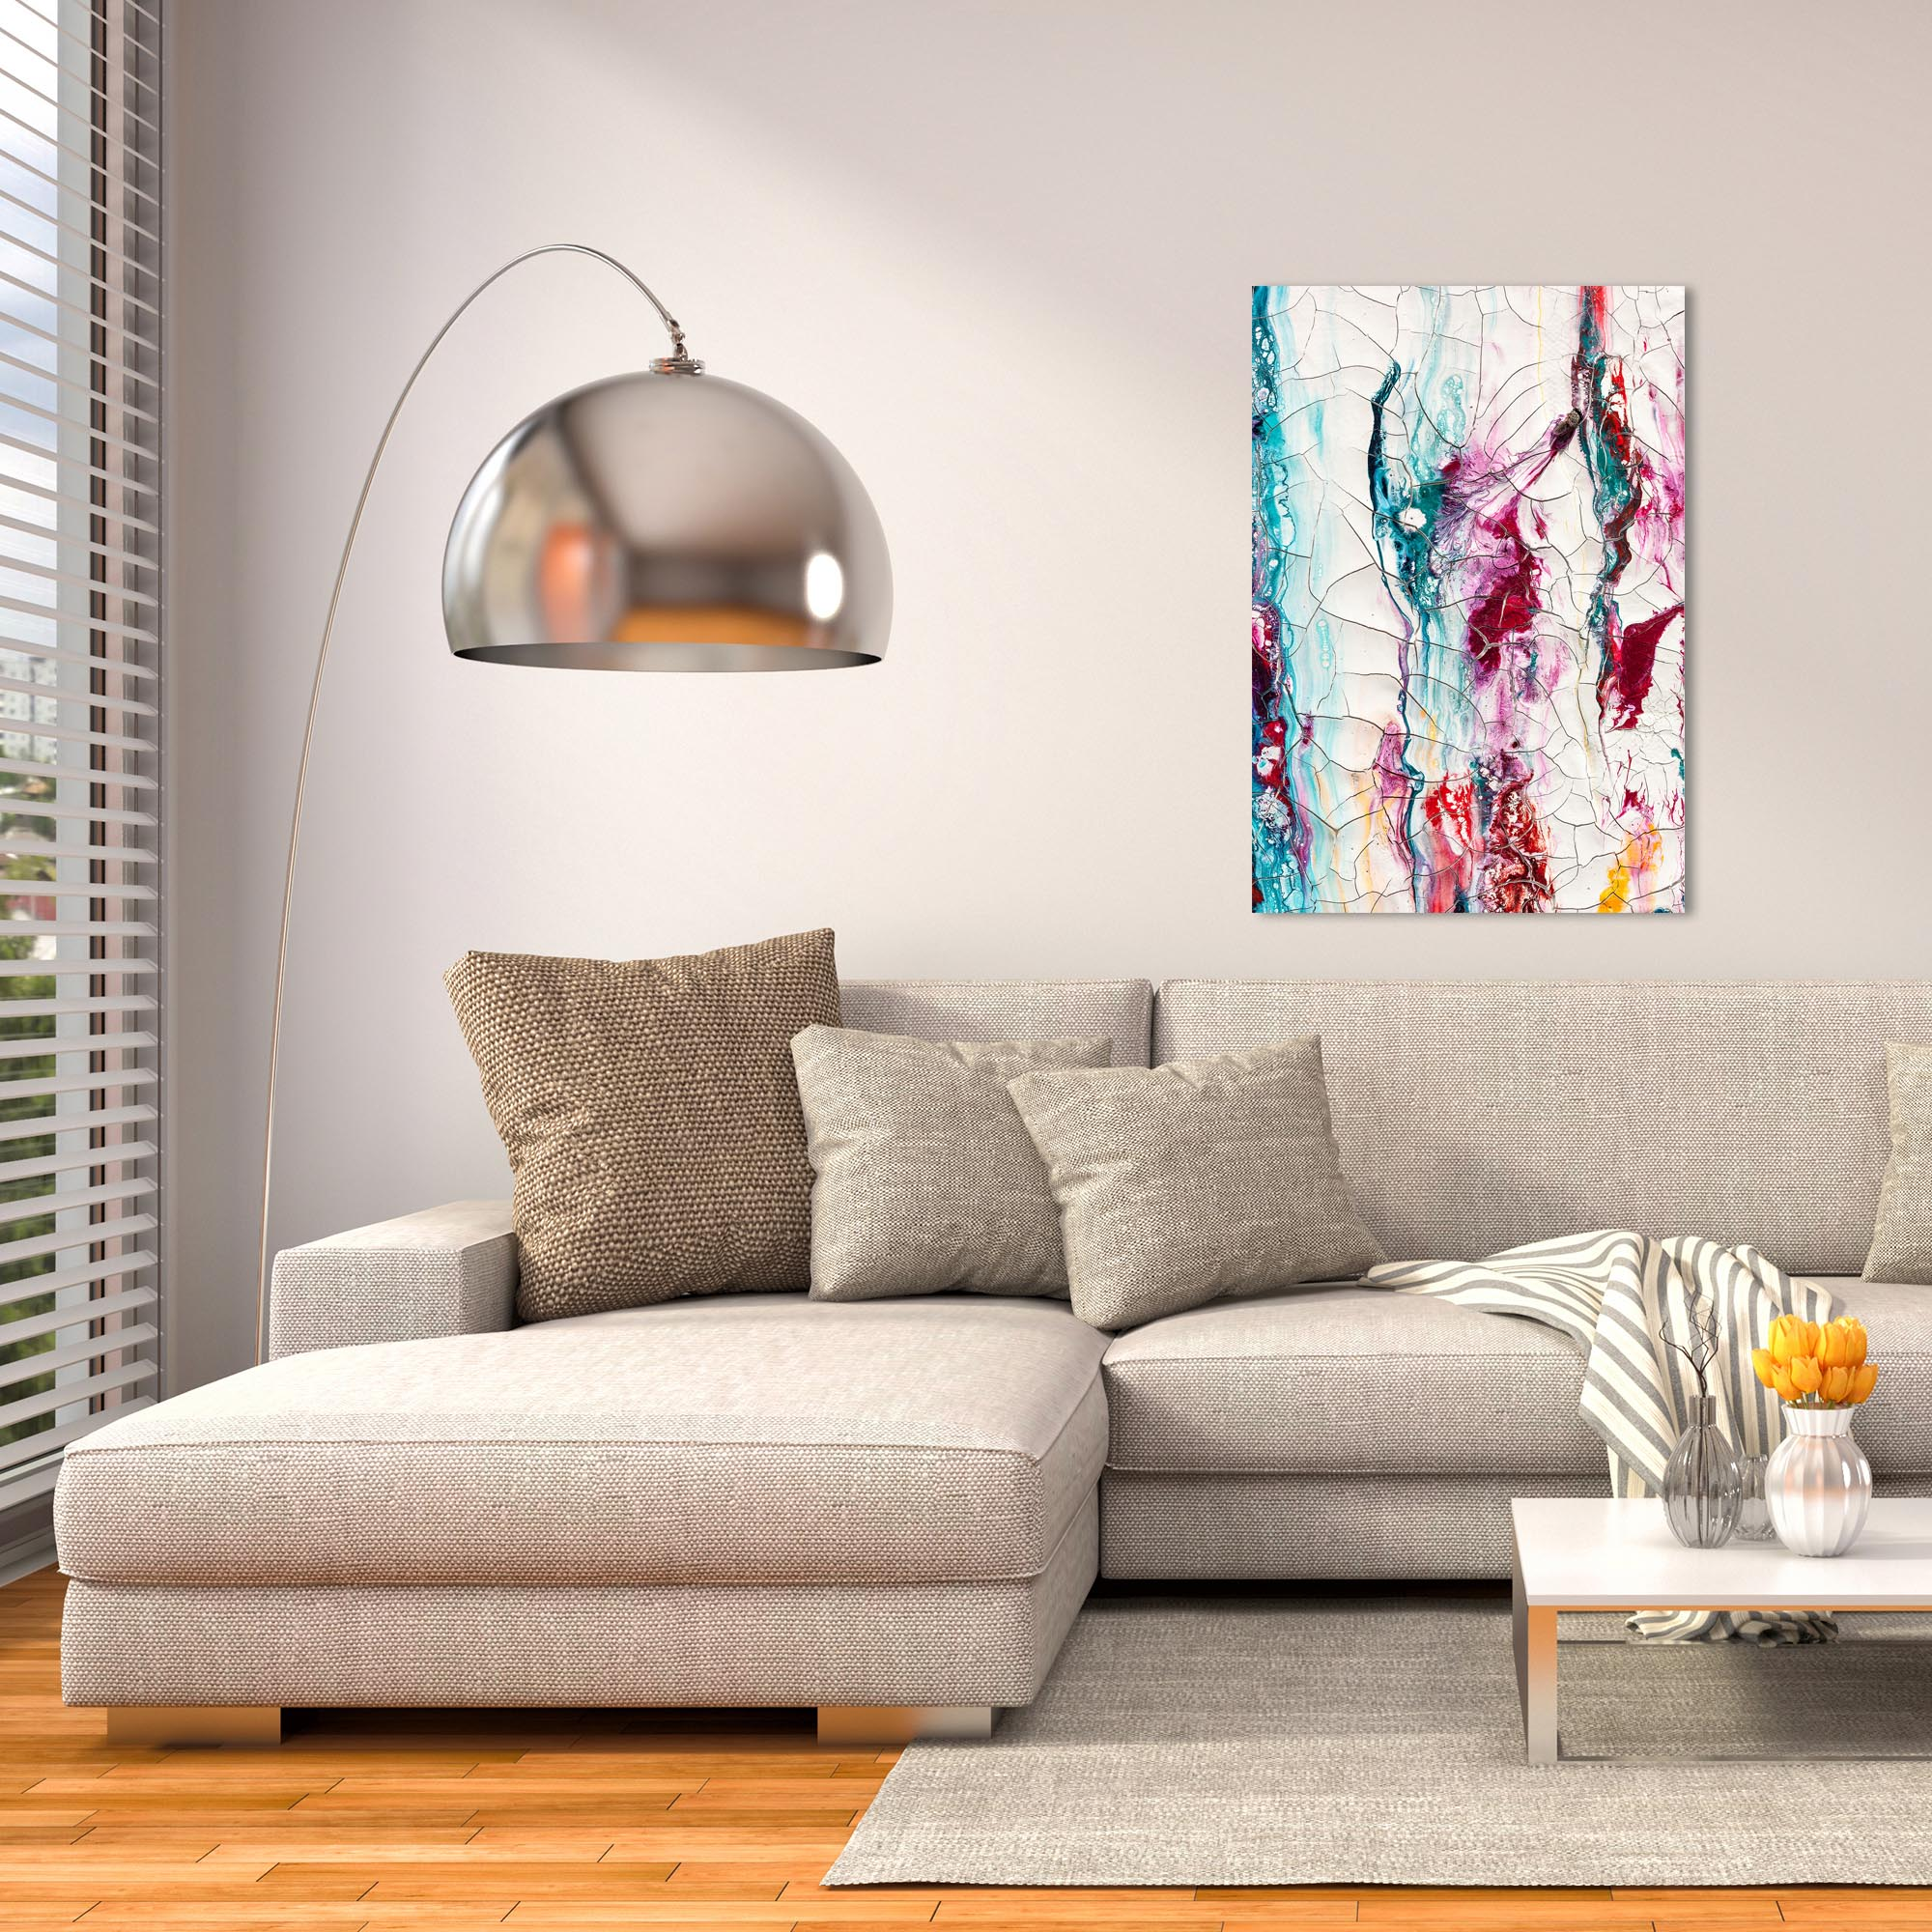 Abstract Wall Art 'Collateral Damage 3' - Colorful Urban Decor on Metal or Plexiglass - Lifestyle View